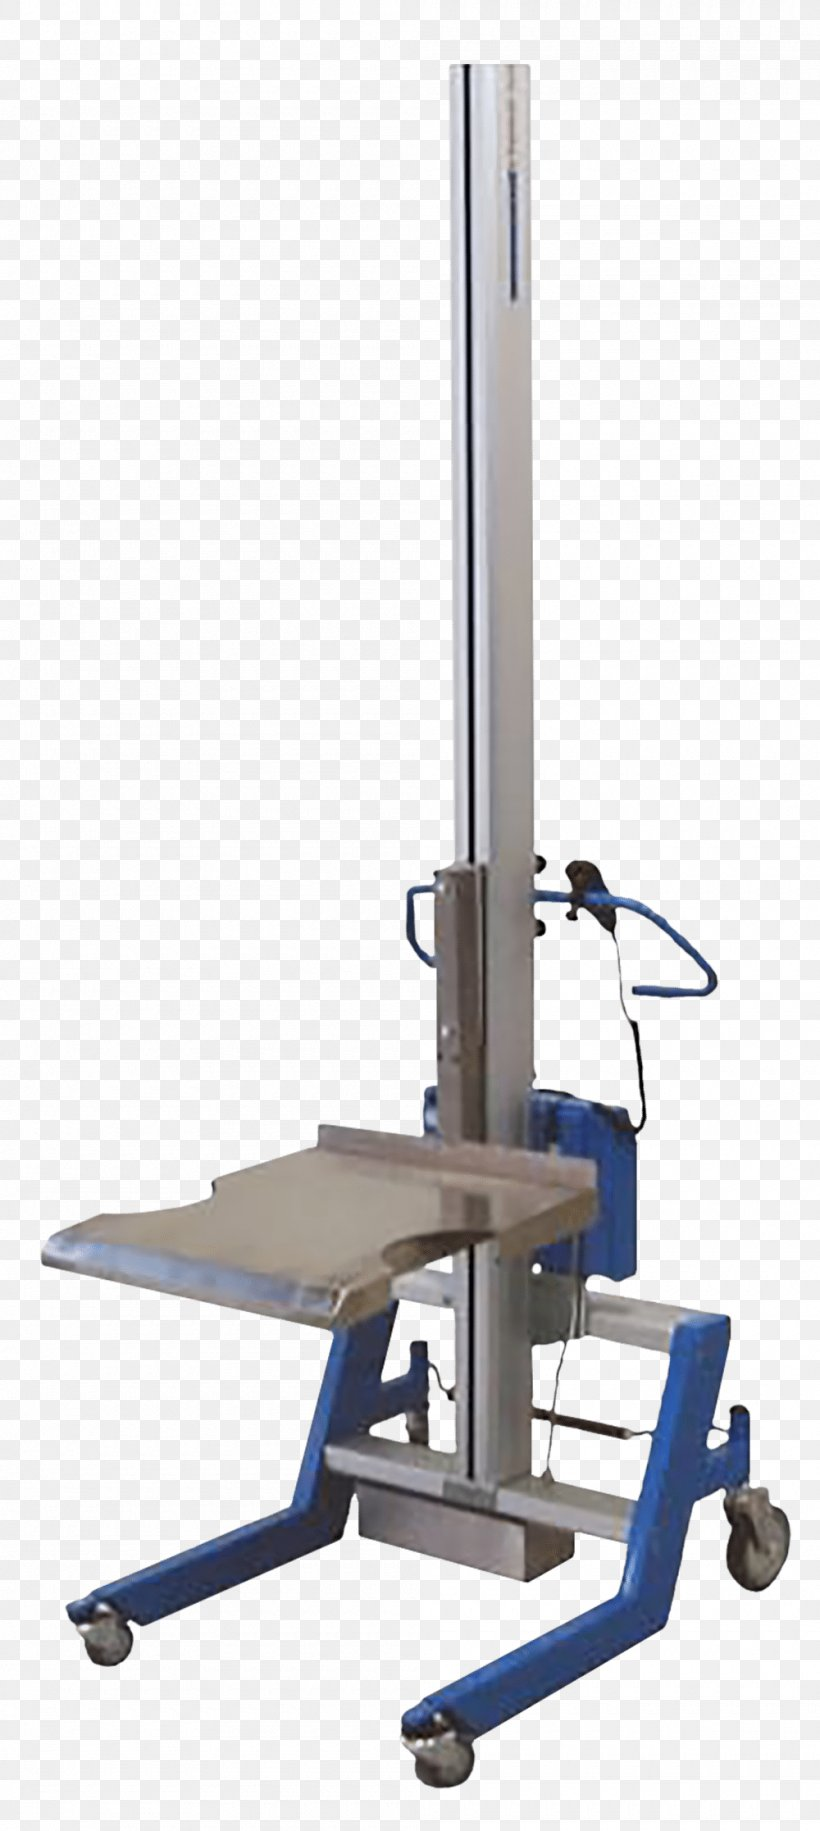 Lifting Equipment Elevator Conveyor System Material Handling Material-handling Equipment, PNG, 1000x2233px, Lifting Equipment, Conveyor System, Crane, Elevator, Hardware Download Free